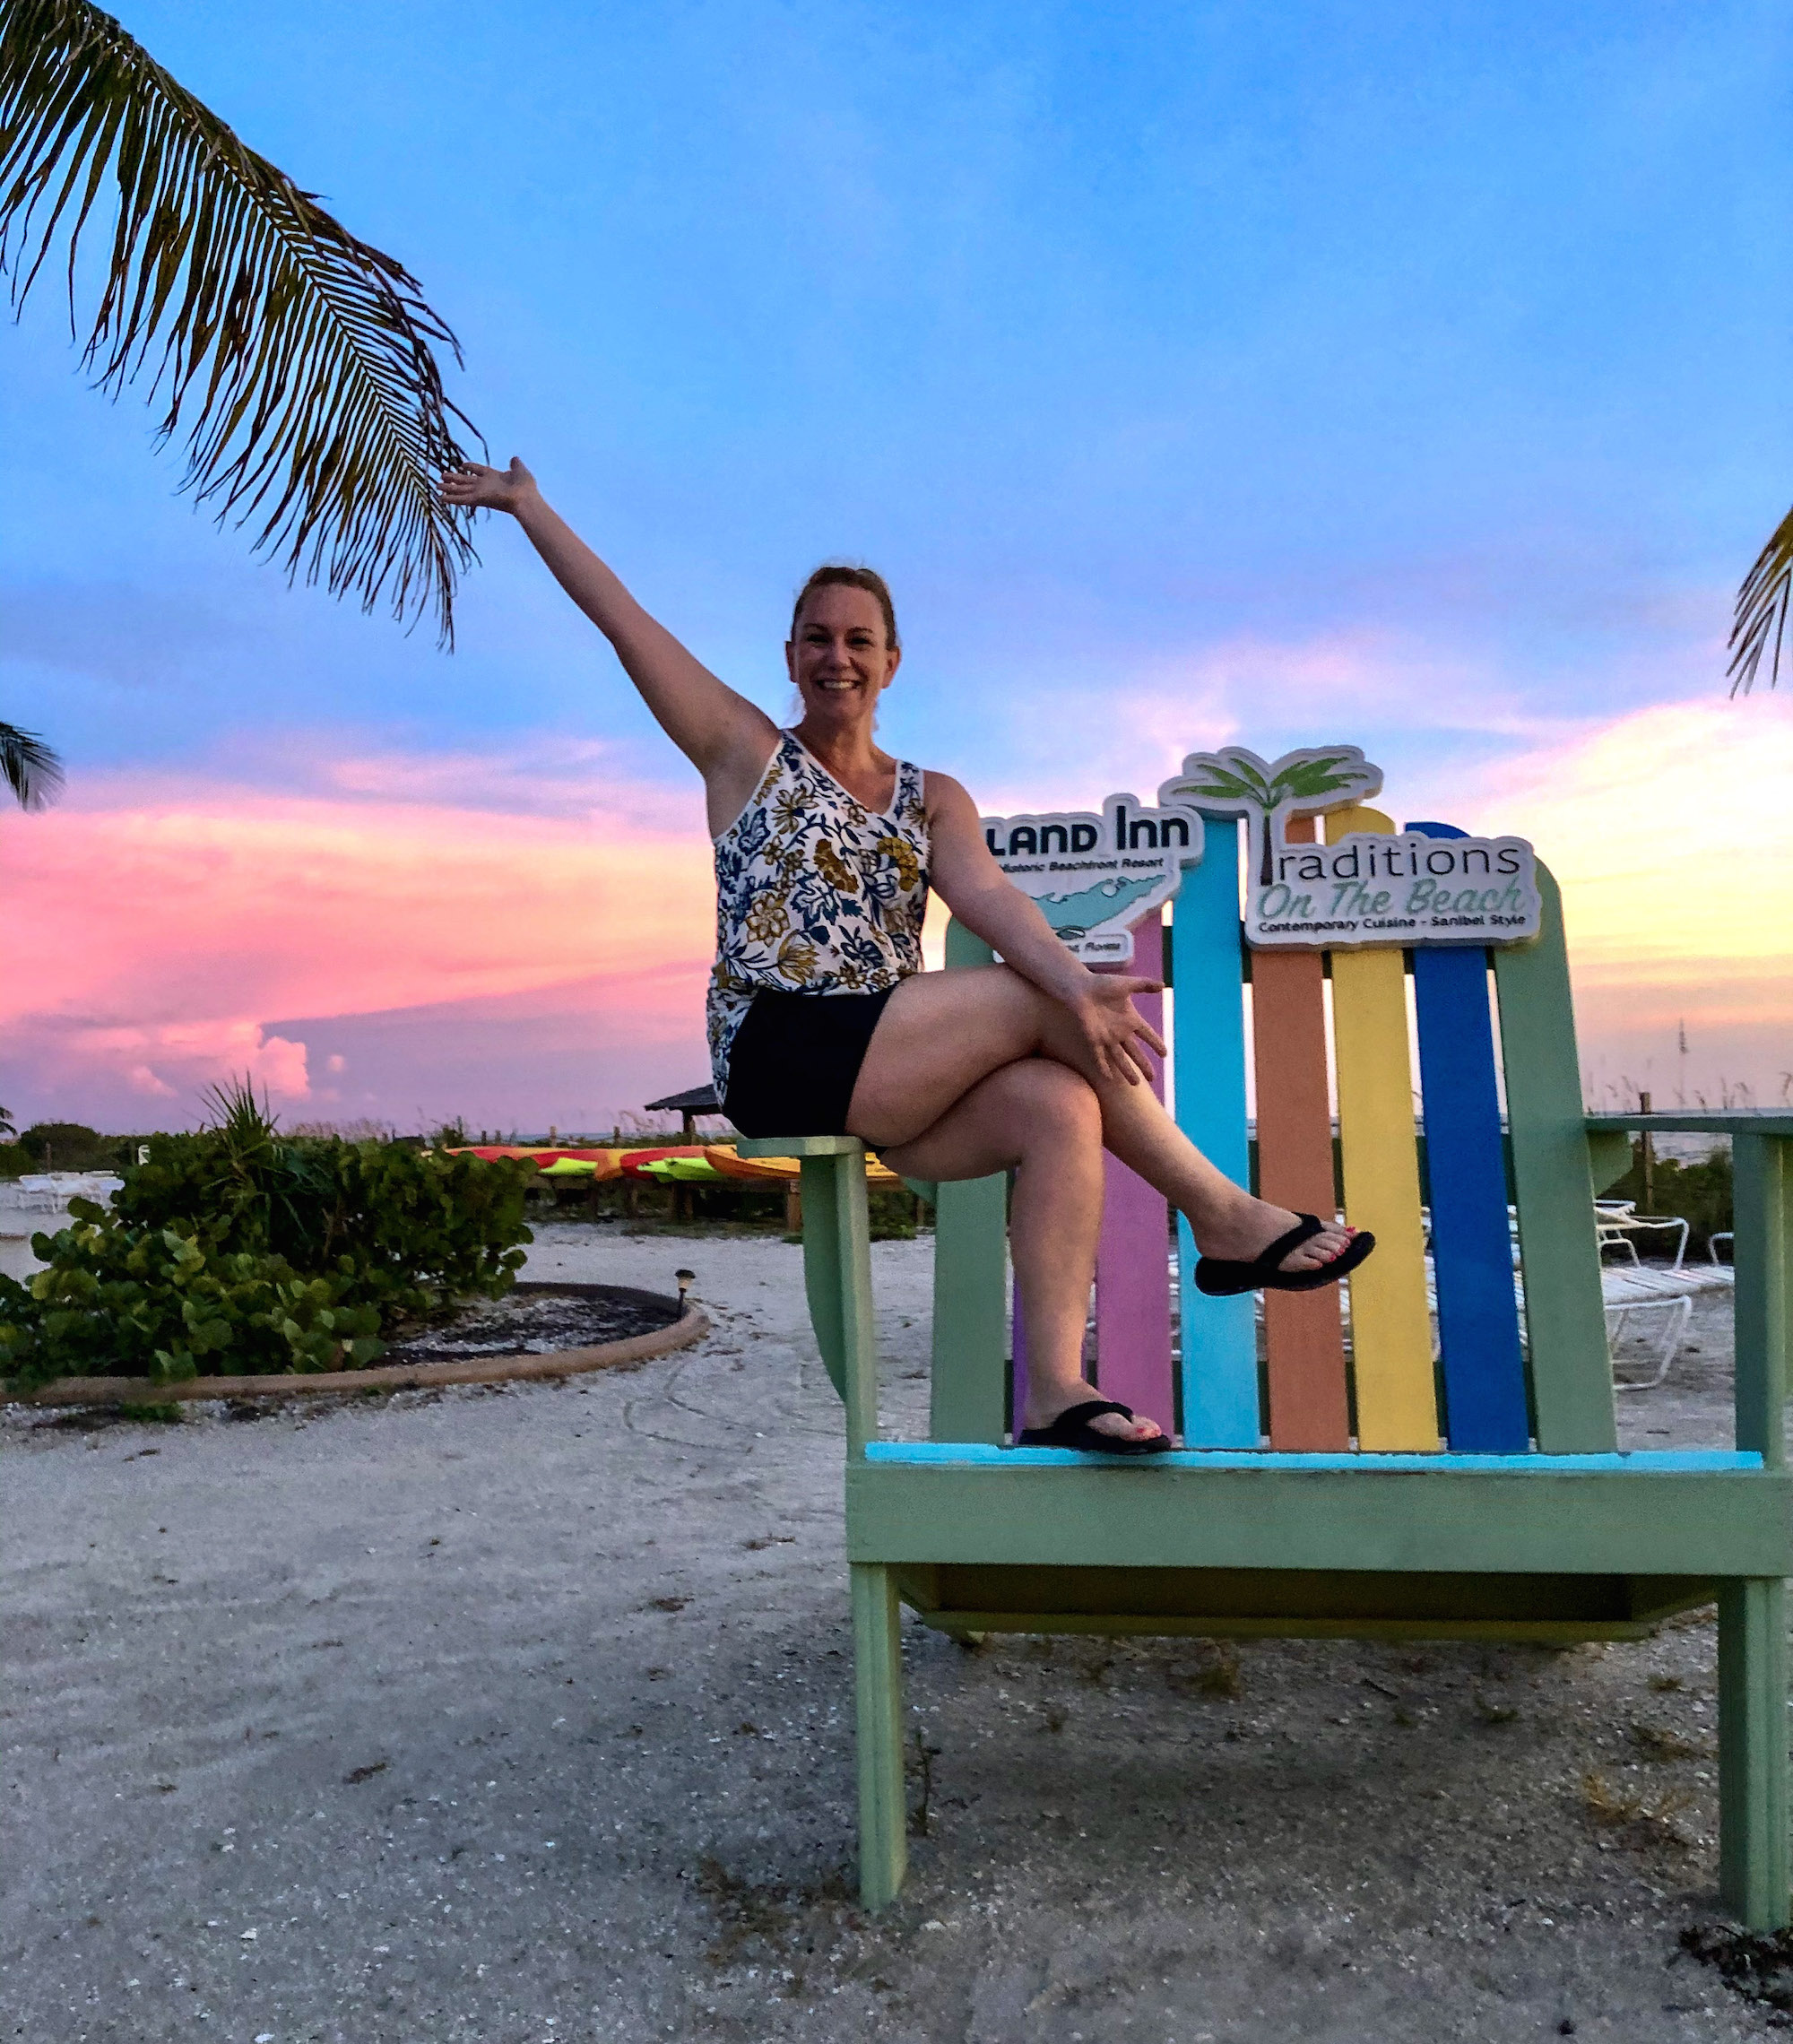 KathrynAnywhere in an oversized chair, very excited for a photos atIsland Inn on Sanibel Island.